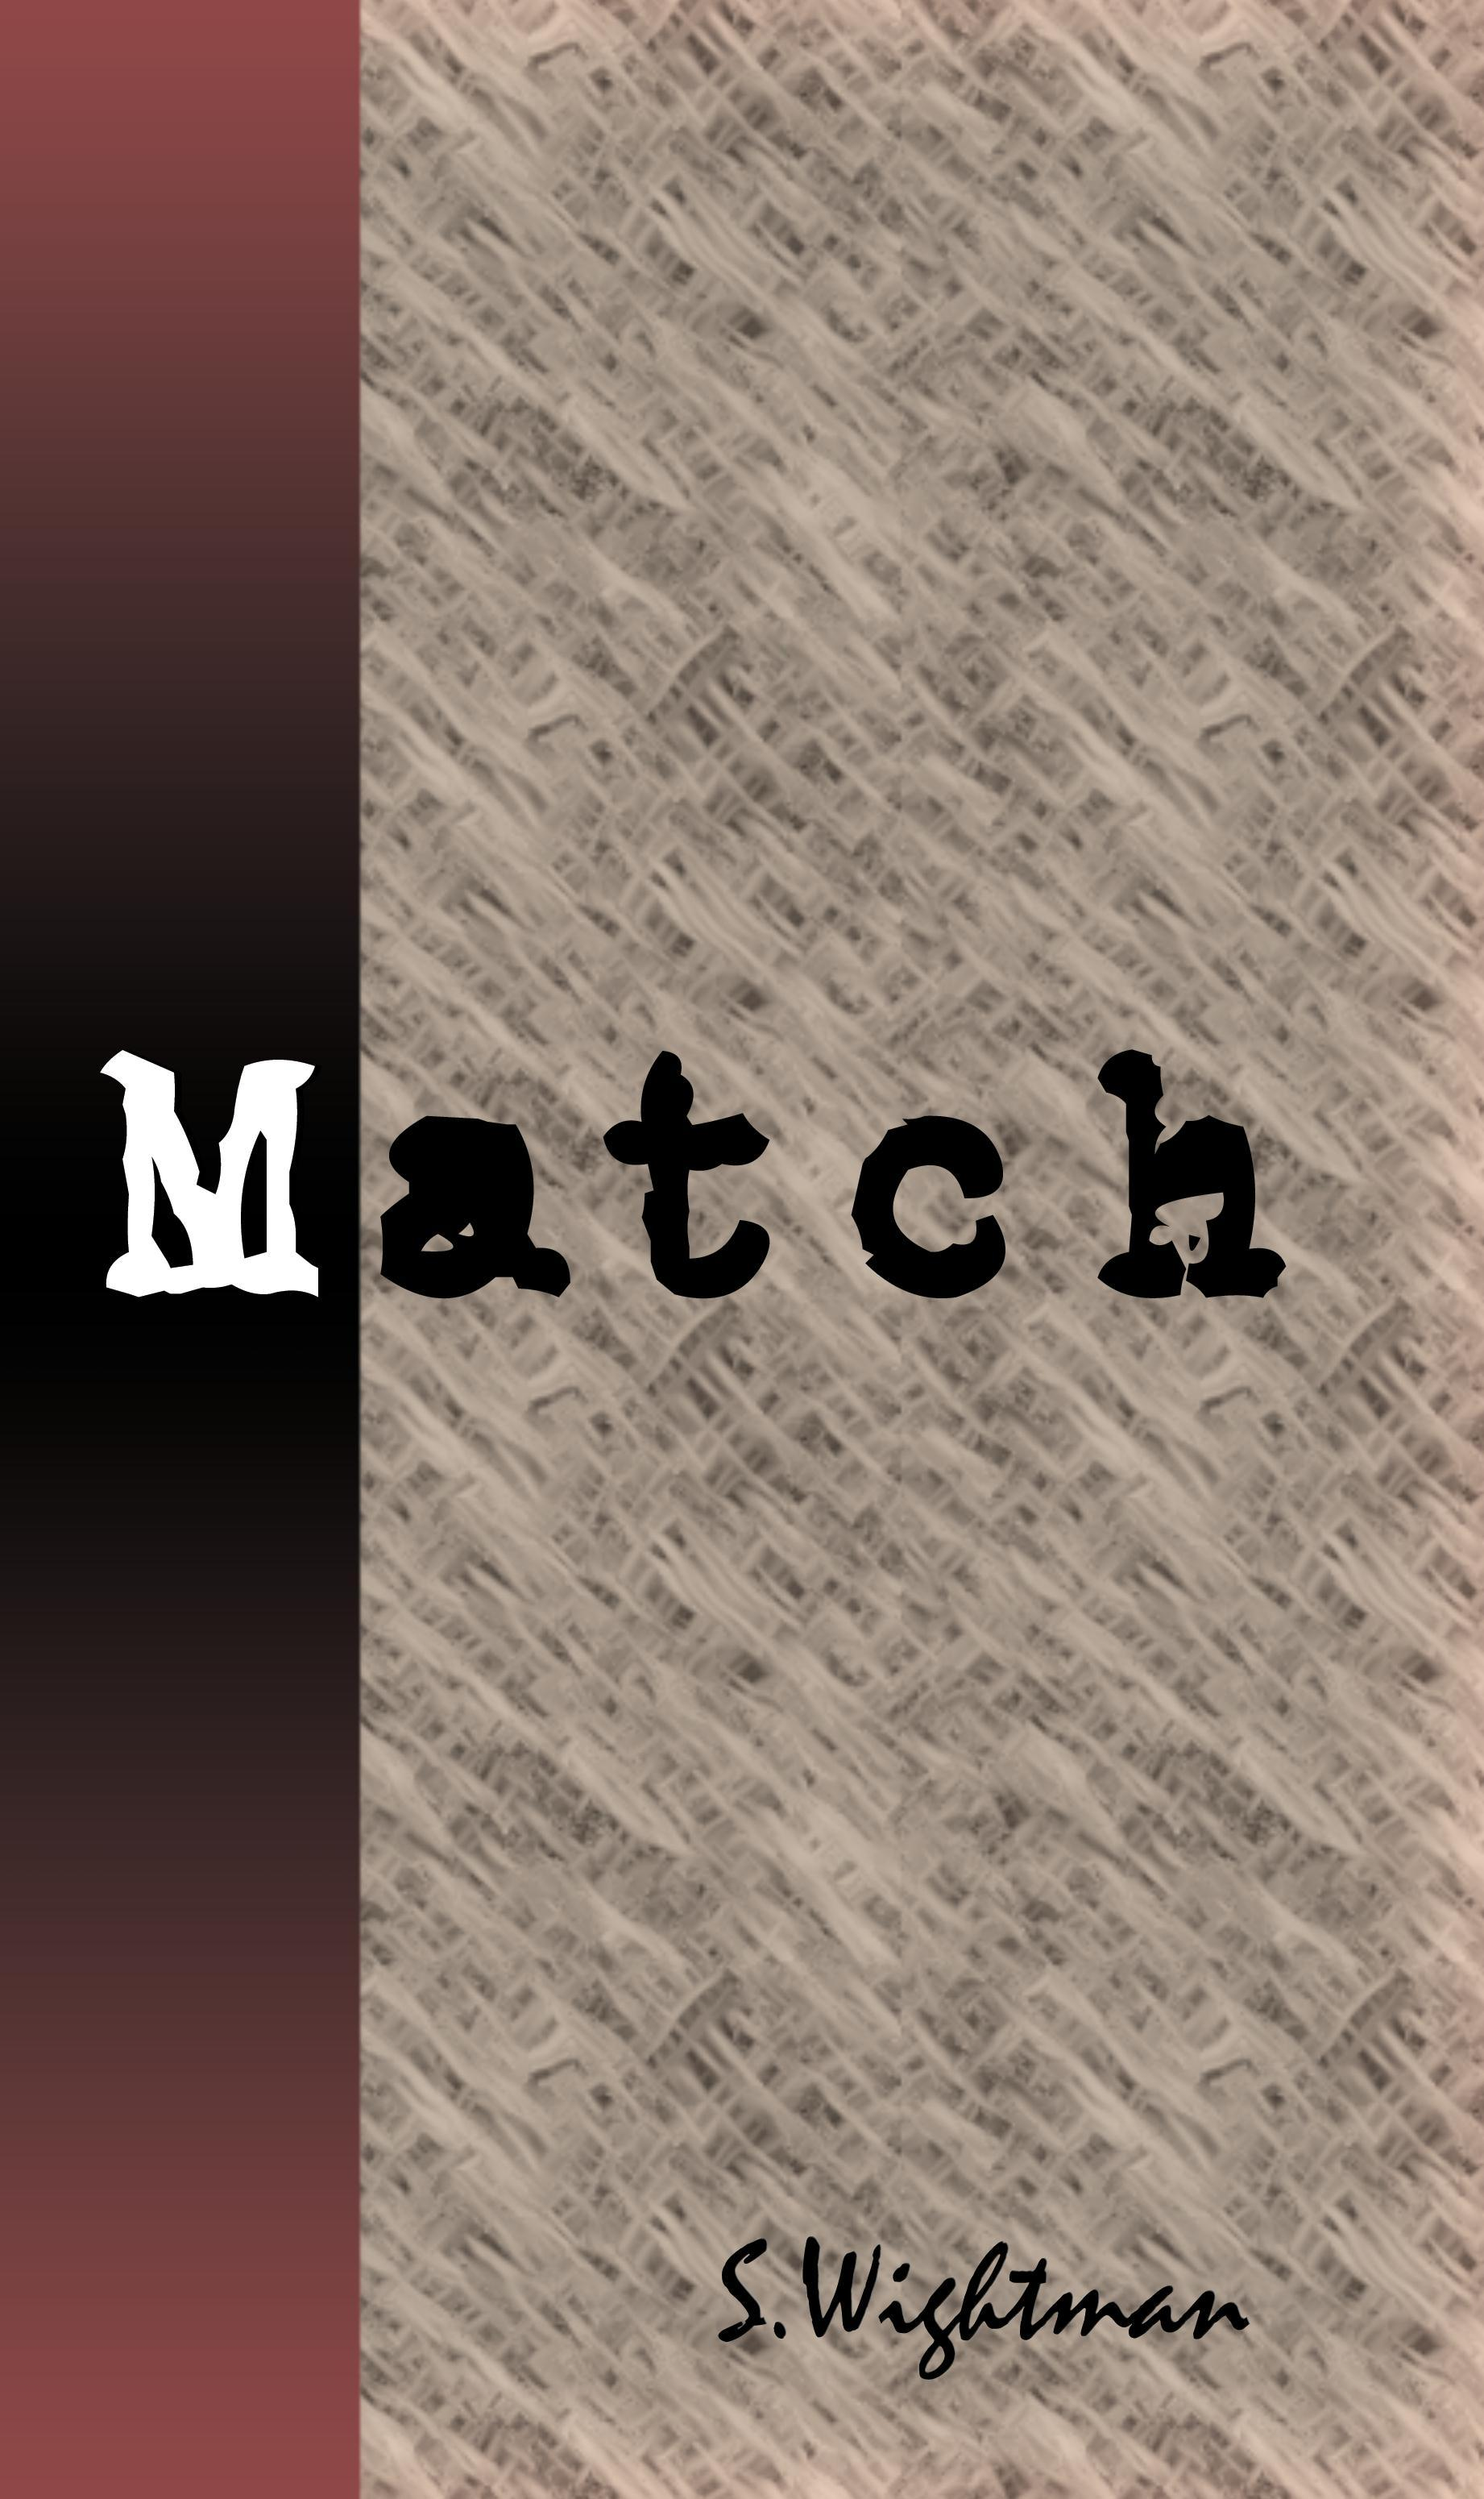 Match  by  S. Wightman